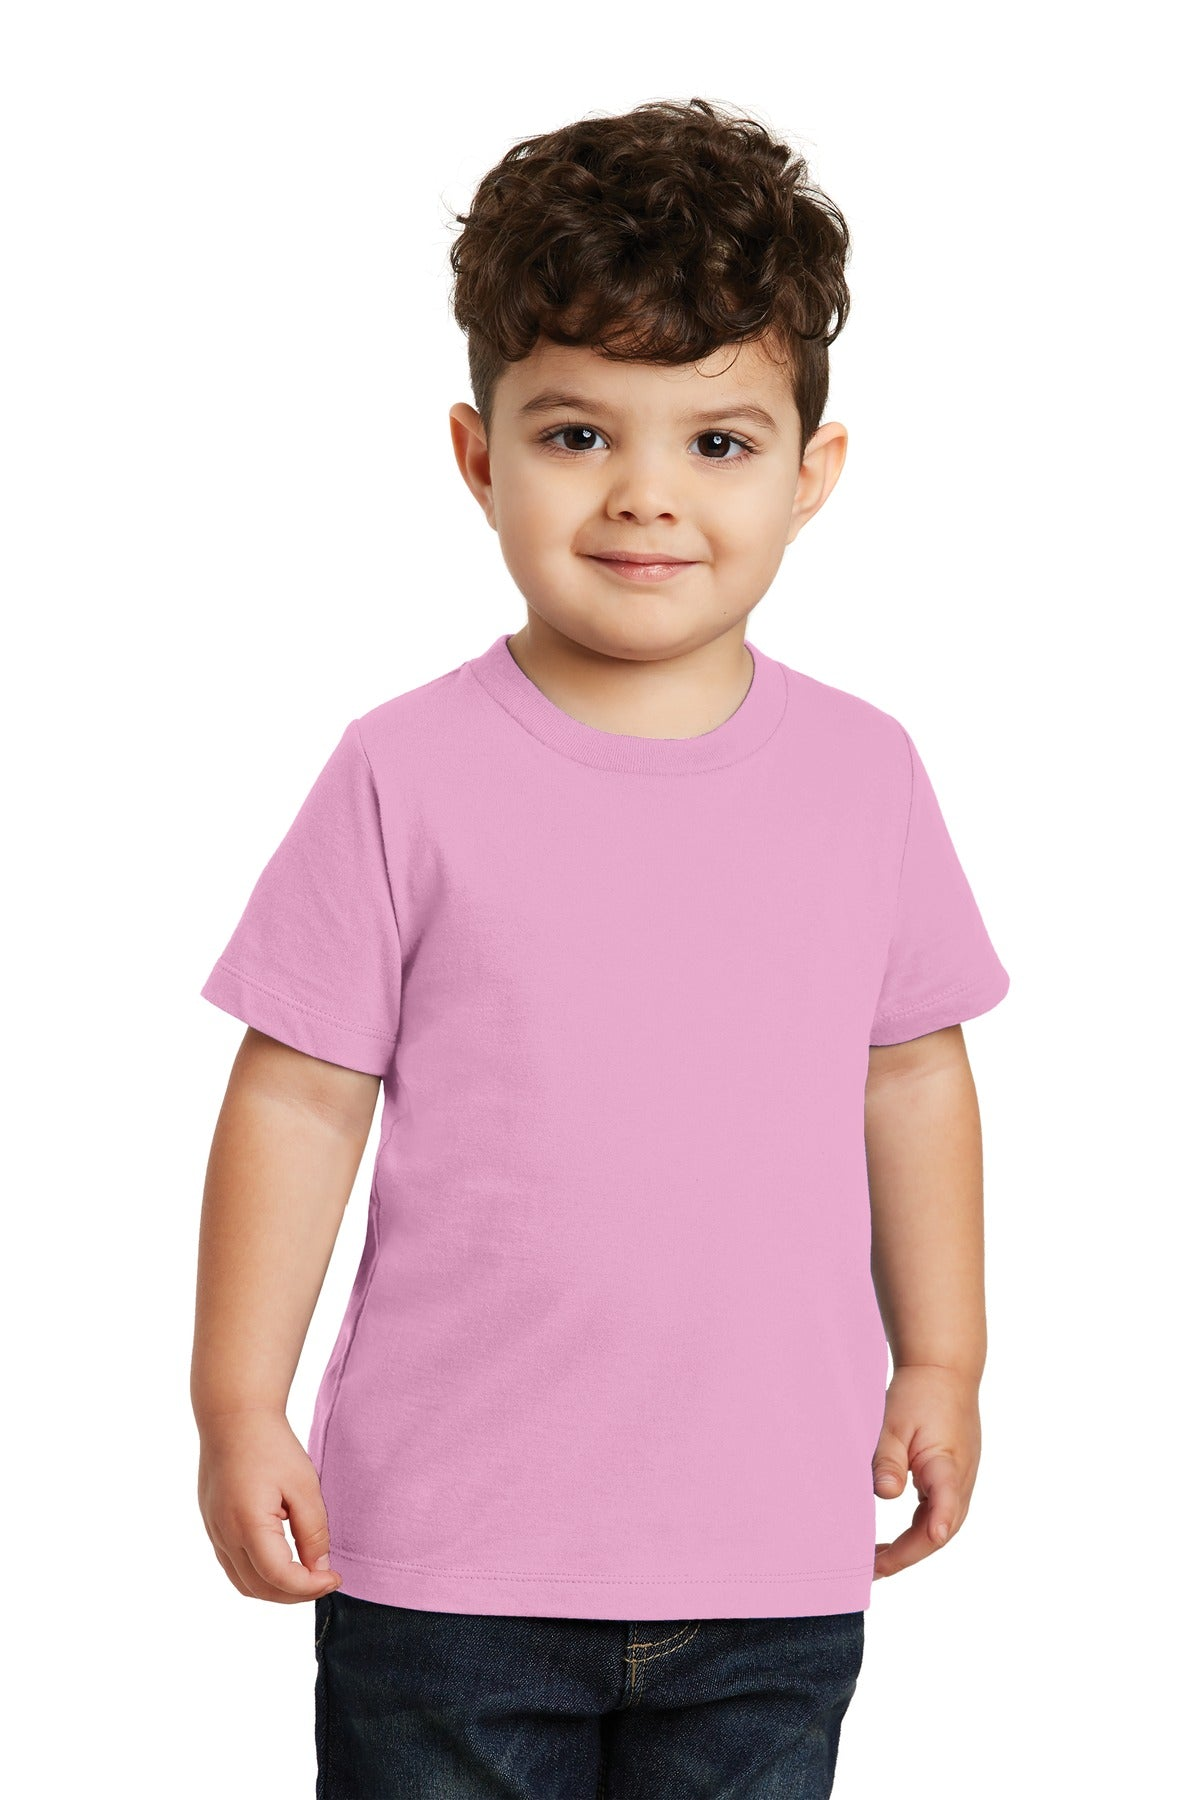 Candy Pink Port & Company Toddler Fan Favorite T-Shirt